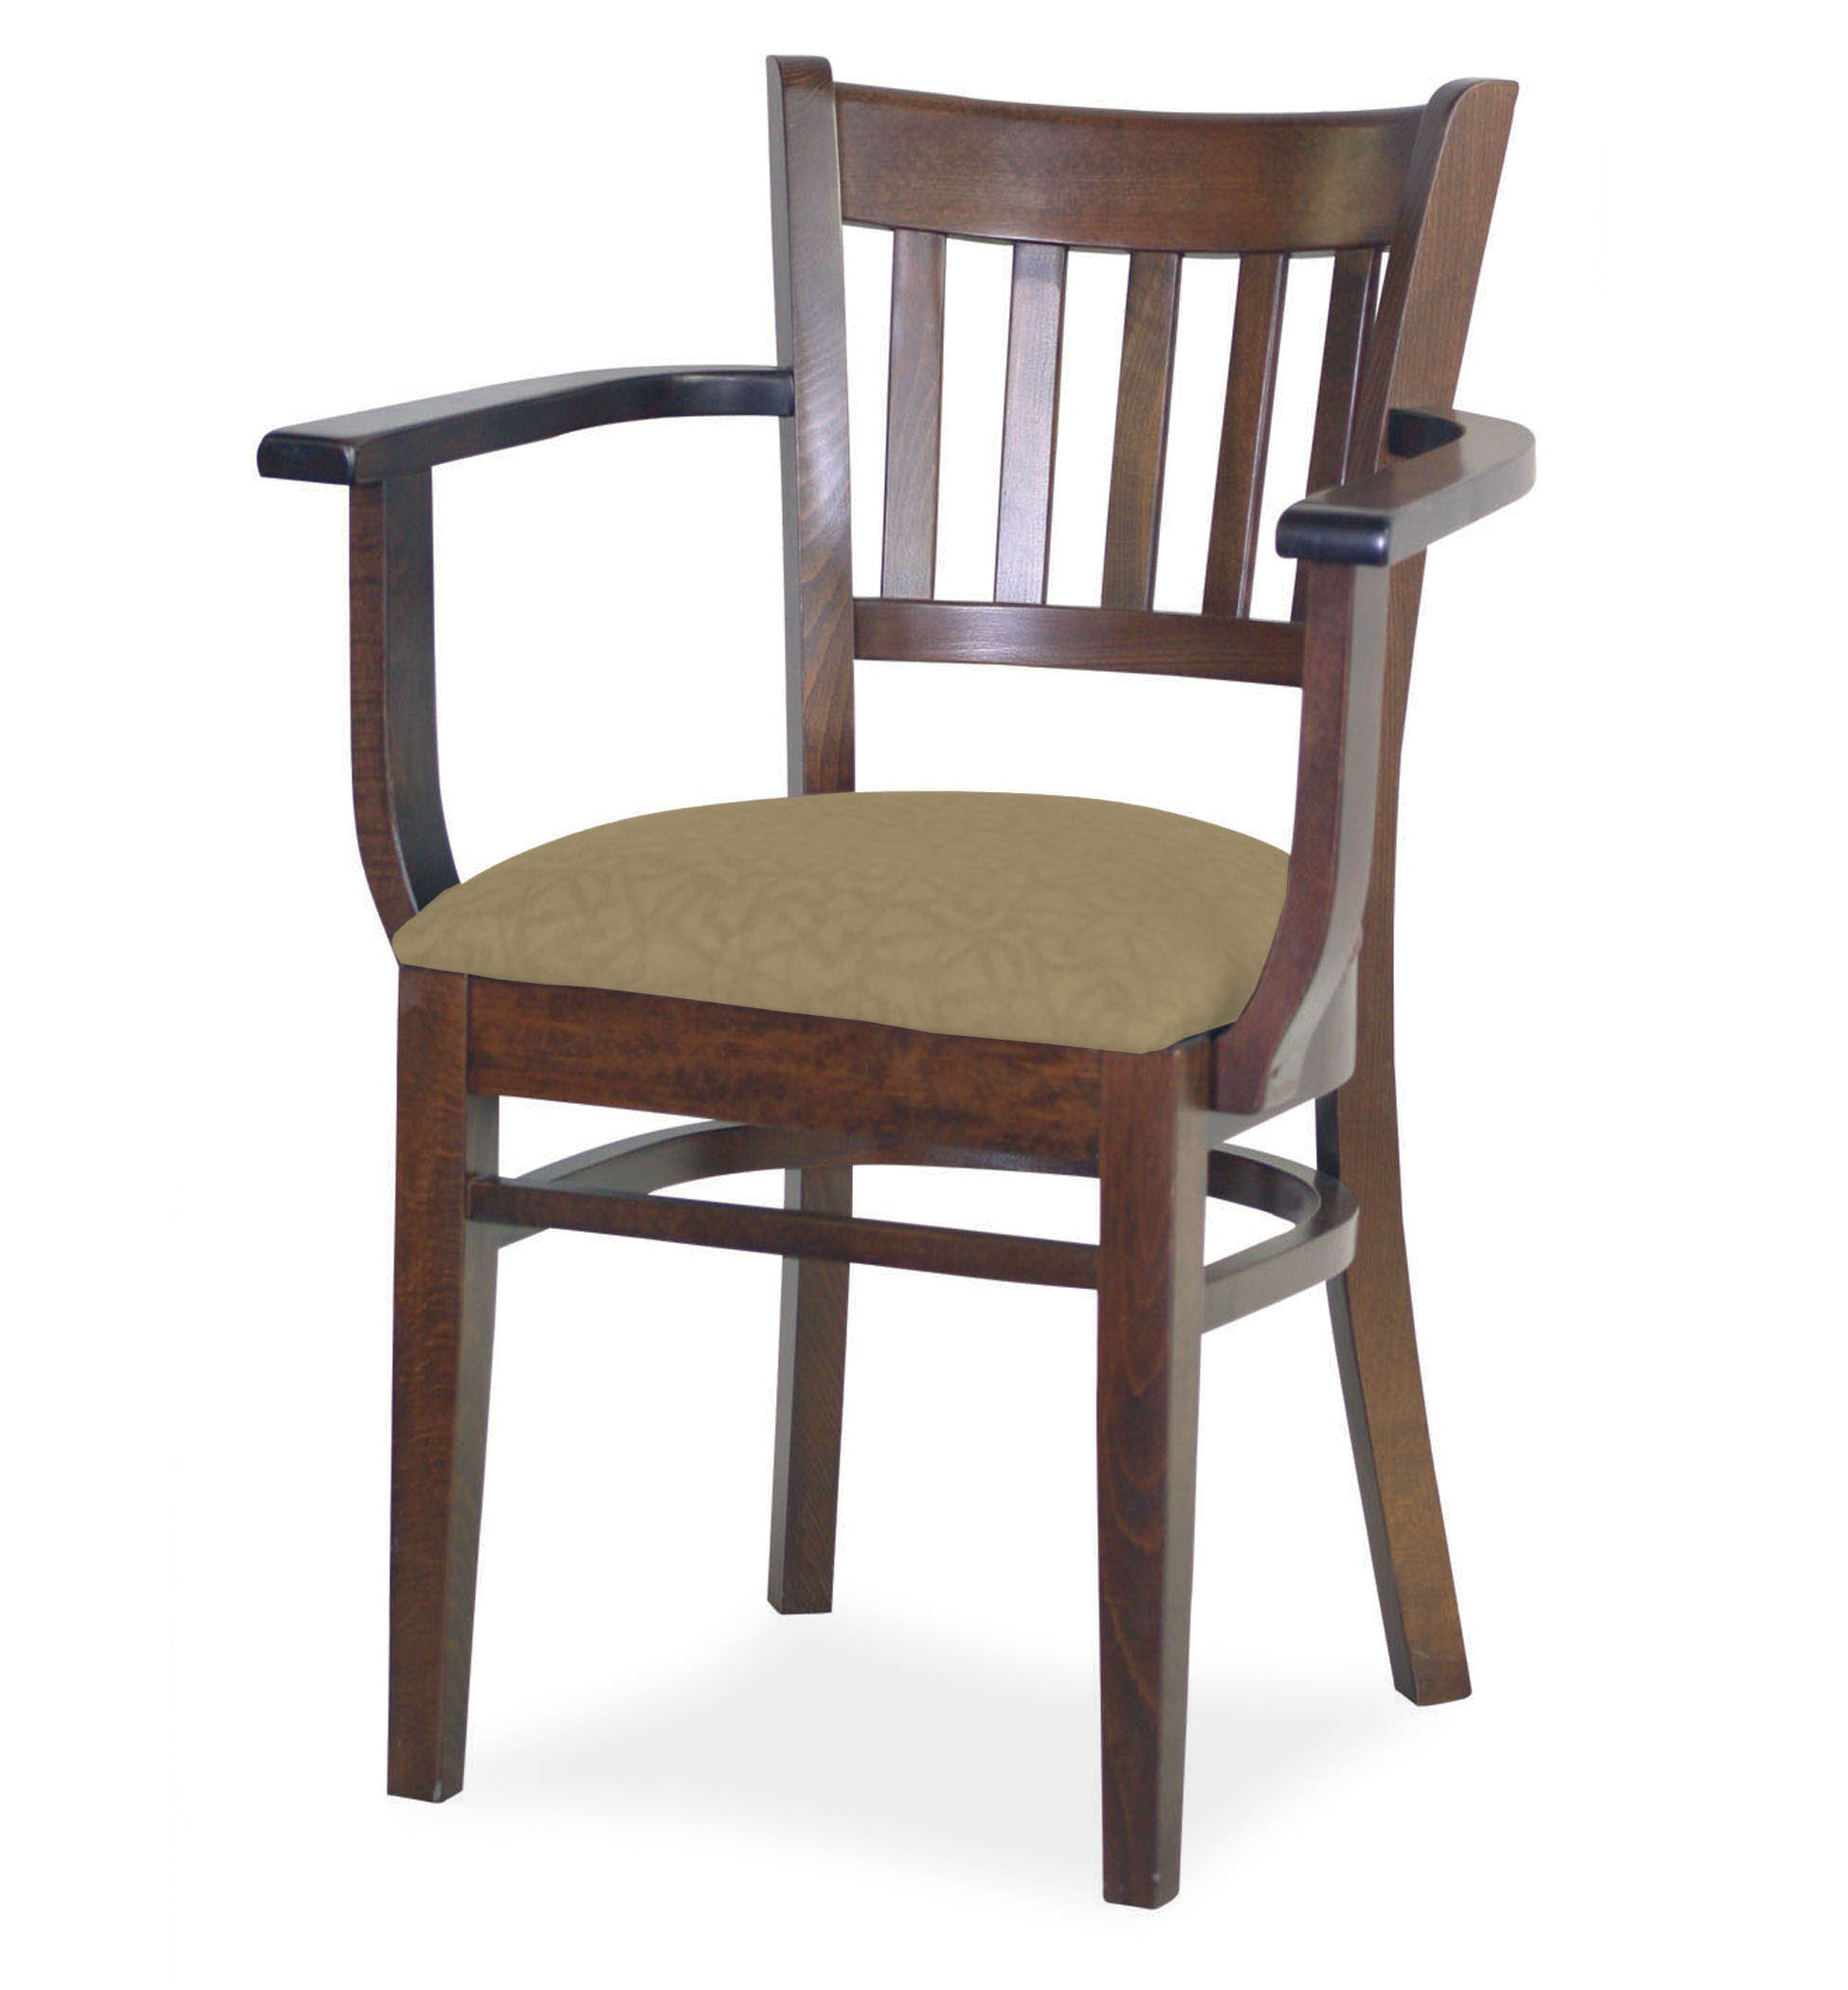 shelby williams chairs graco blossom 4 in 1 high chair seating system 7040-1 wood arm